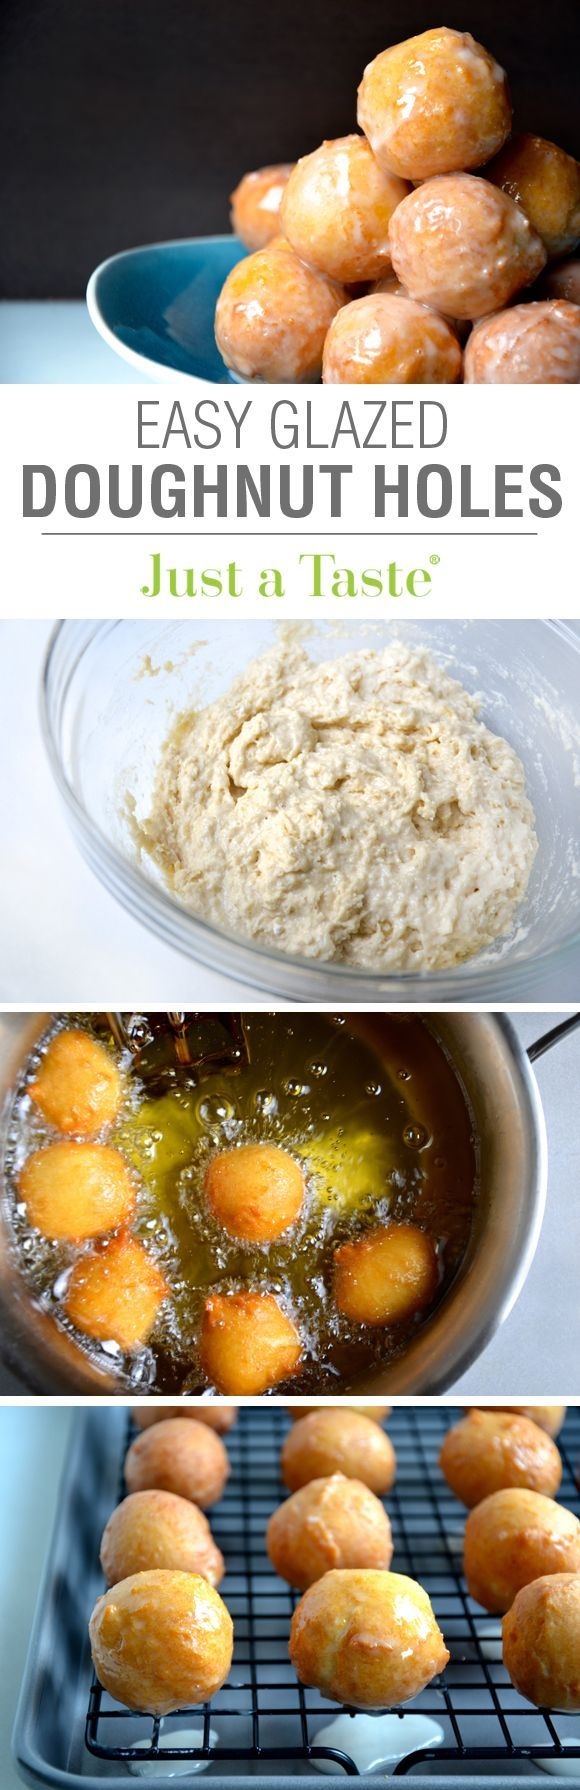 Easy Homemade Glazed Doughnut Holes #recipe from justataste.com